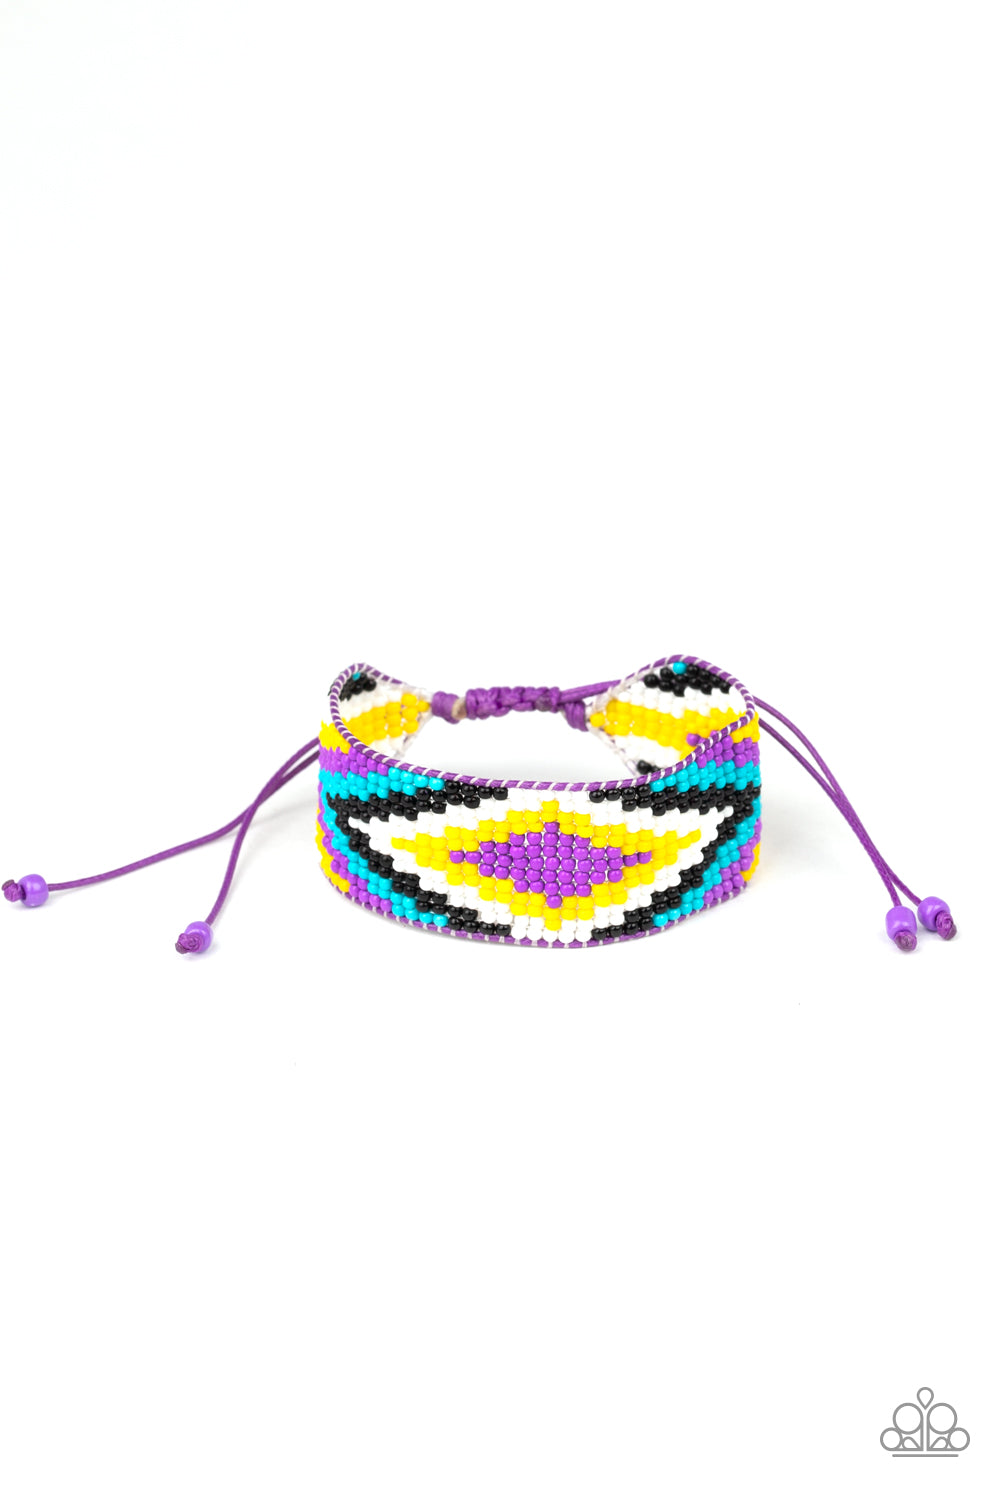 Beautifully Badlands - Purple Urban Bracelet